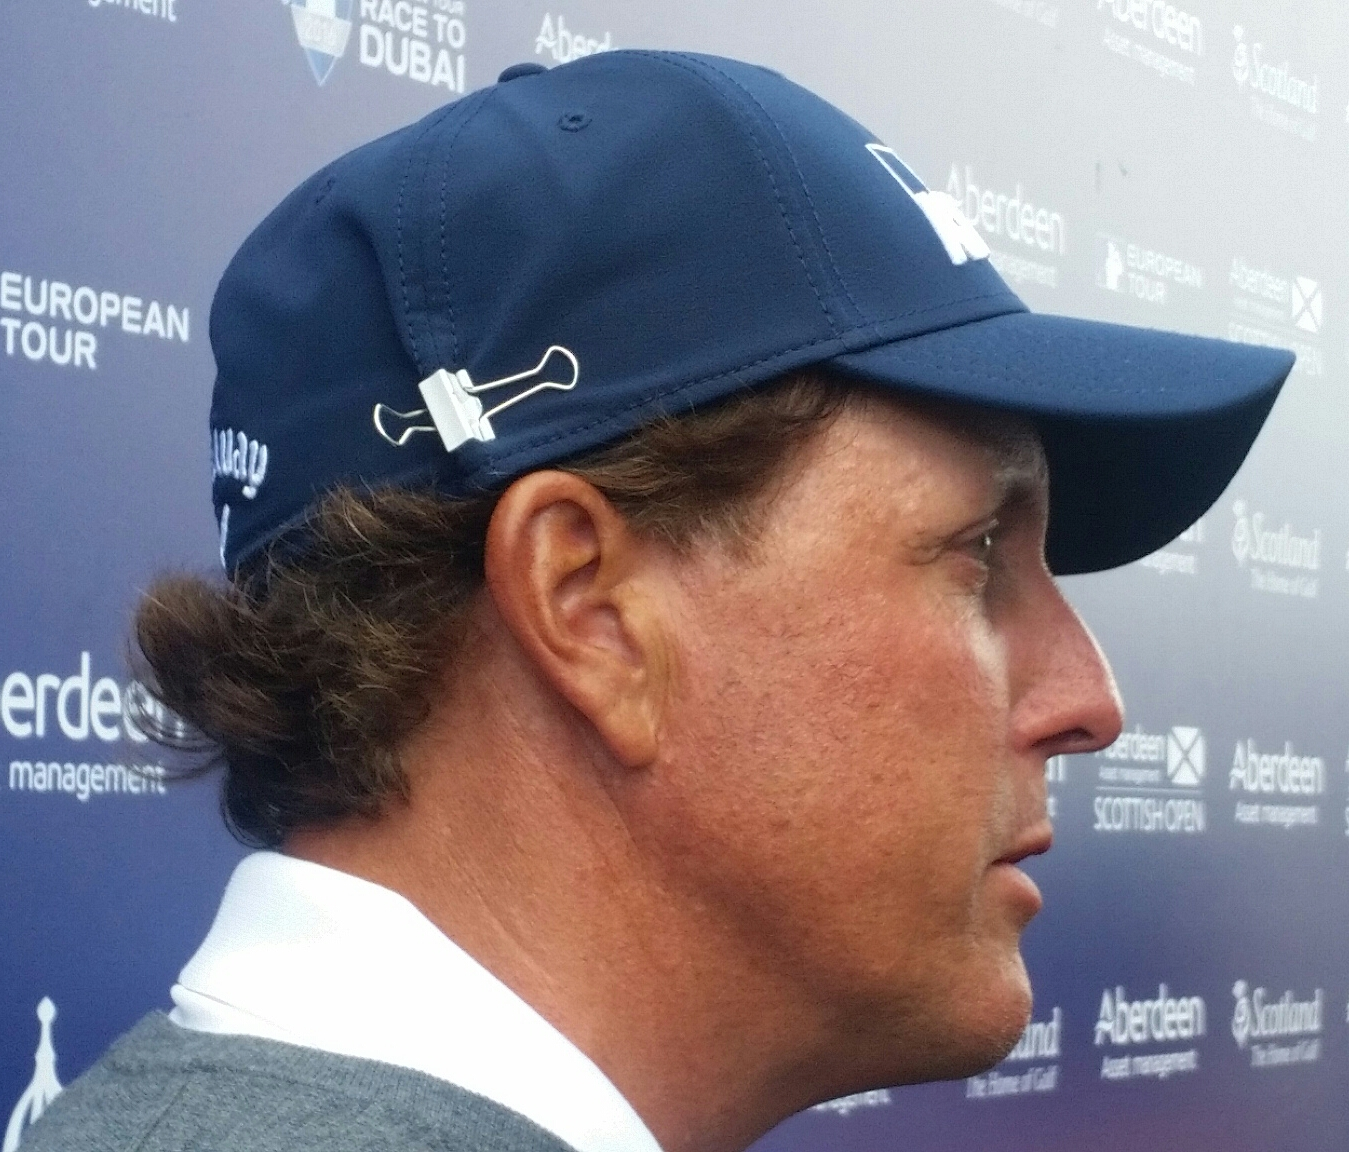 Phil Mickelson sporting the latest in fashion at this week's Aberdeen Asset Management Scottish Open. (Photo - www.golfbytourmiss.com)